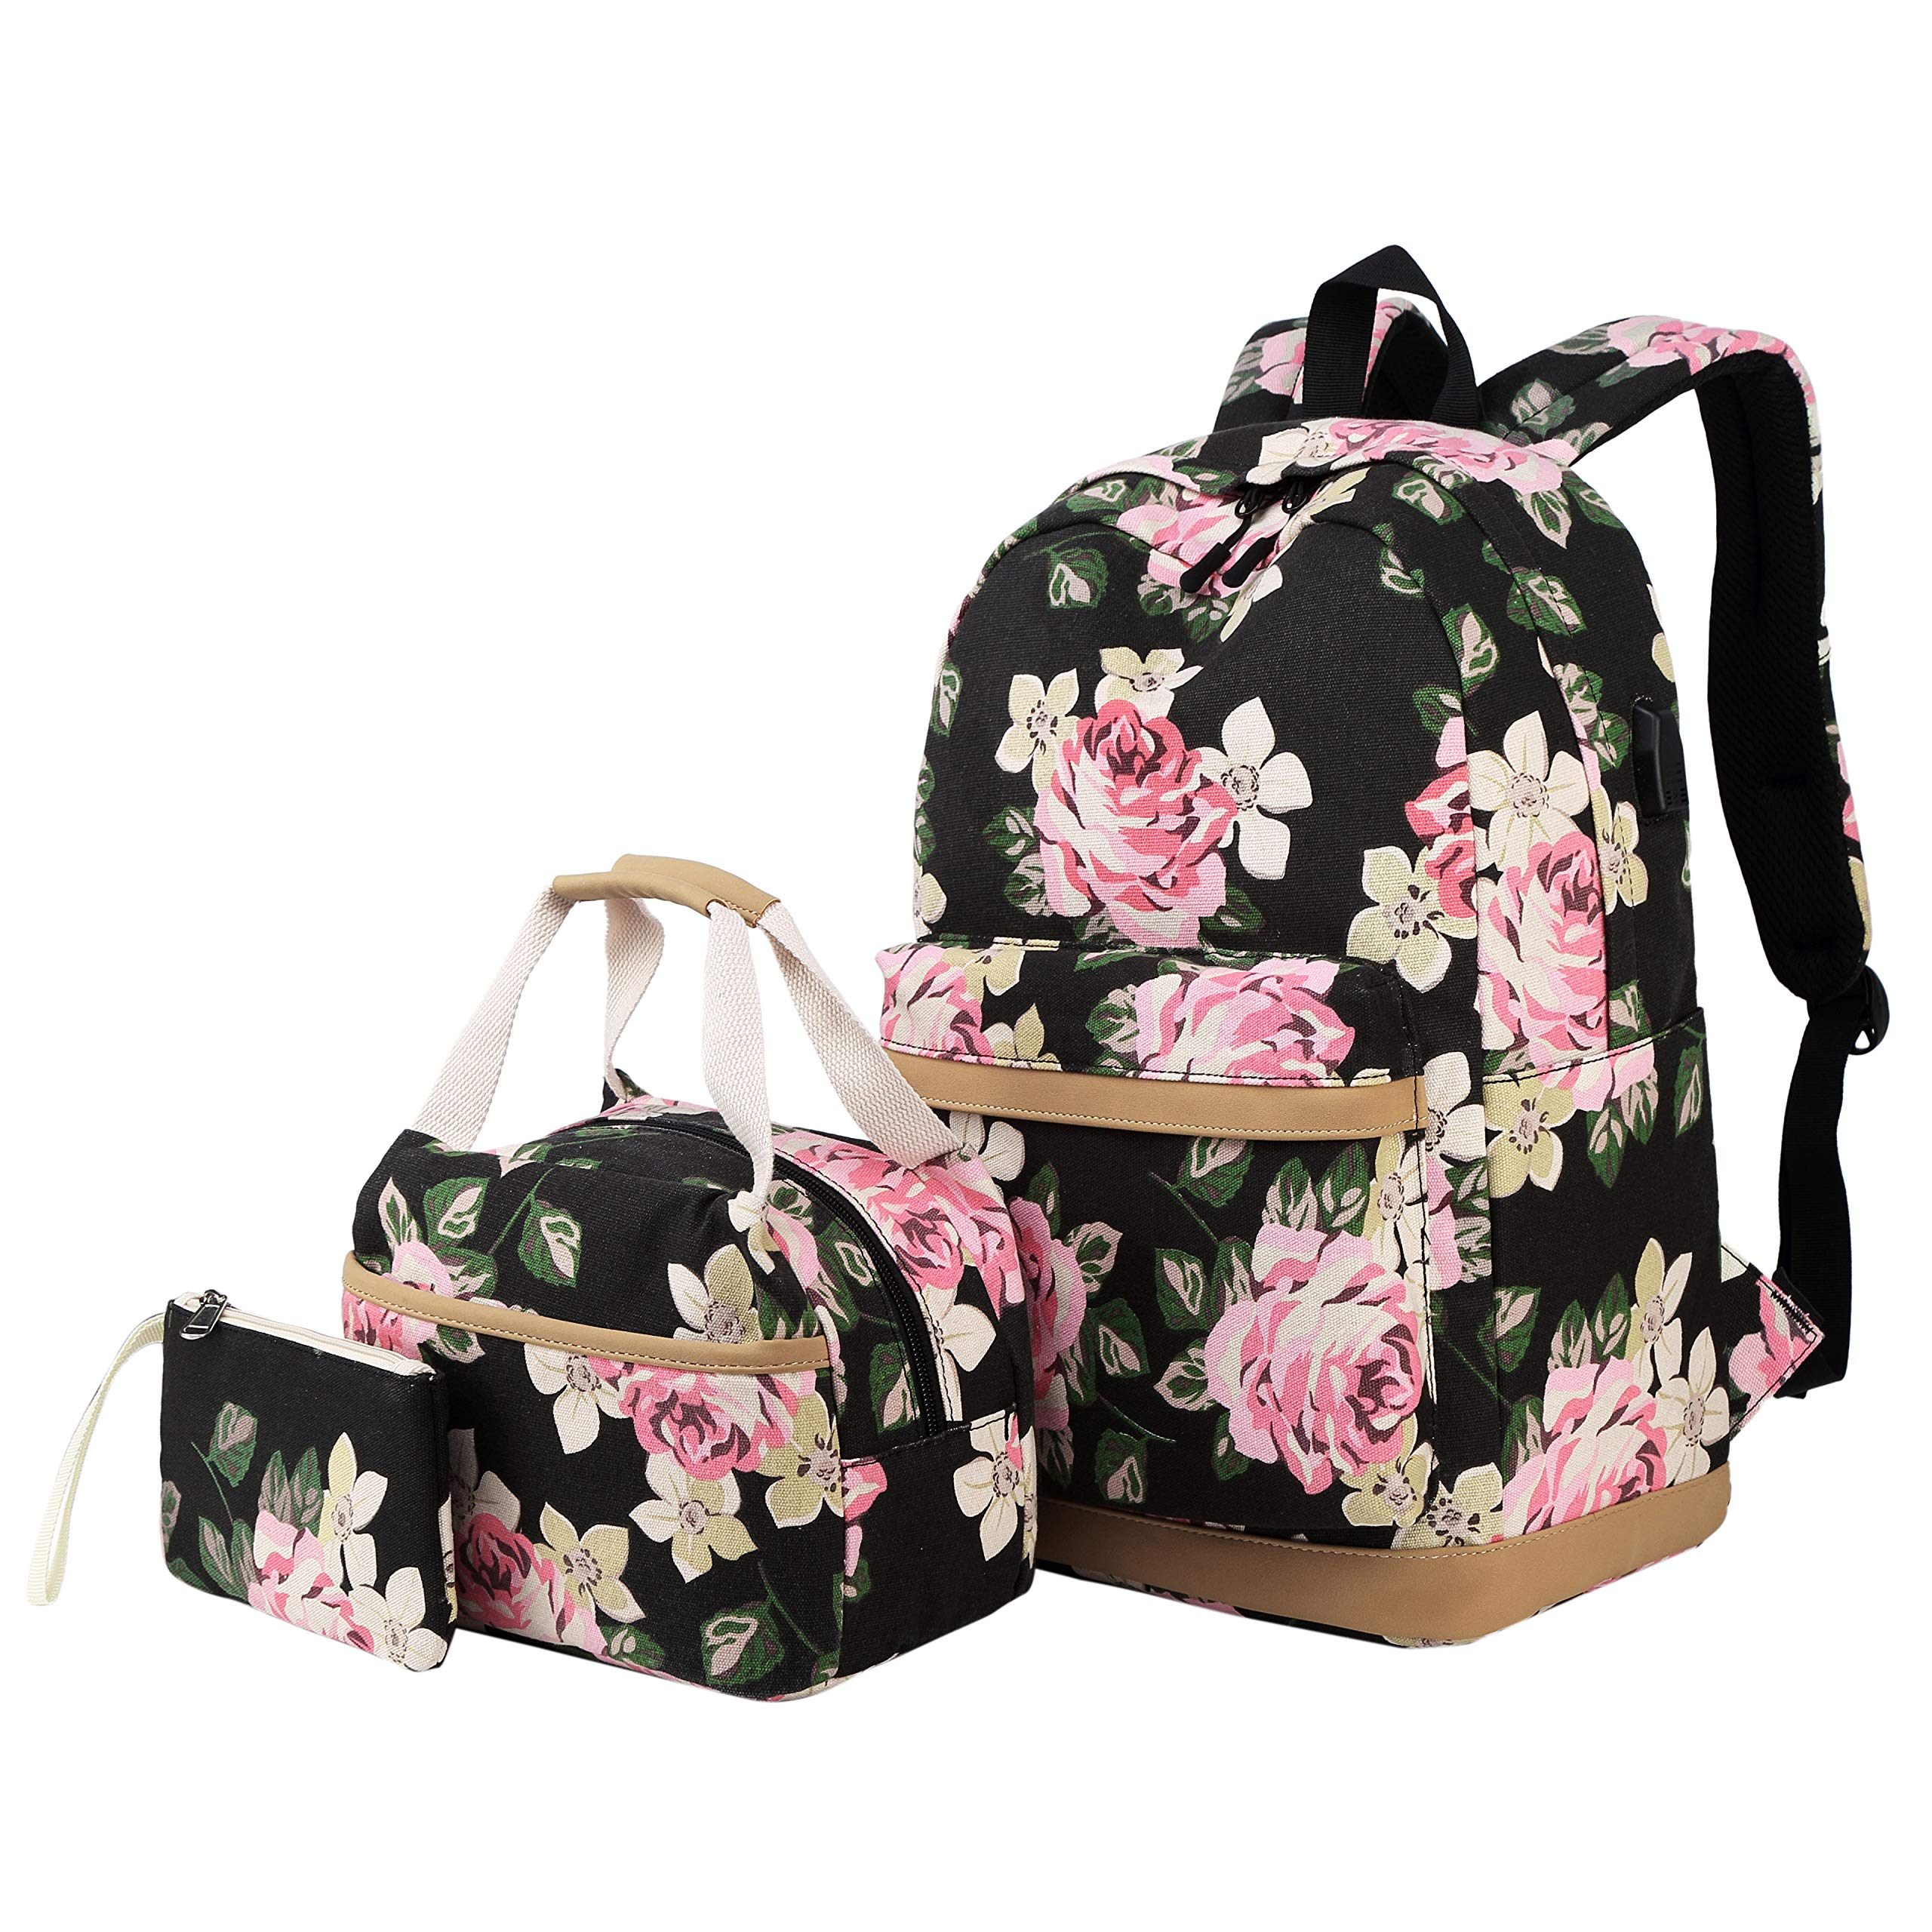 Backpack for Girls Teens High School and College, Bookbags +Lunch Bag + Pencil Case, 3 bags in 1